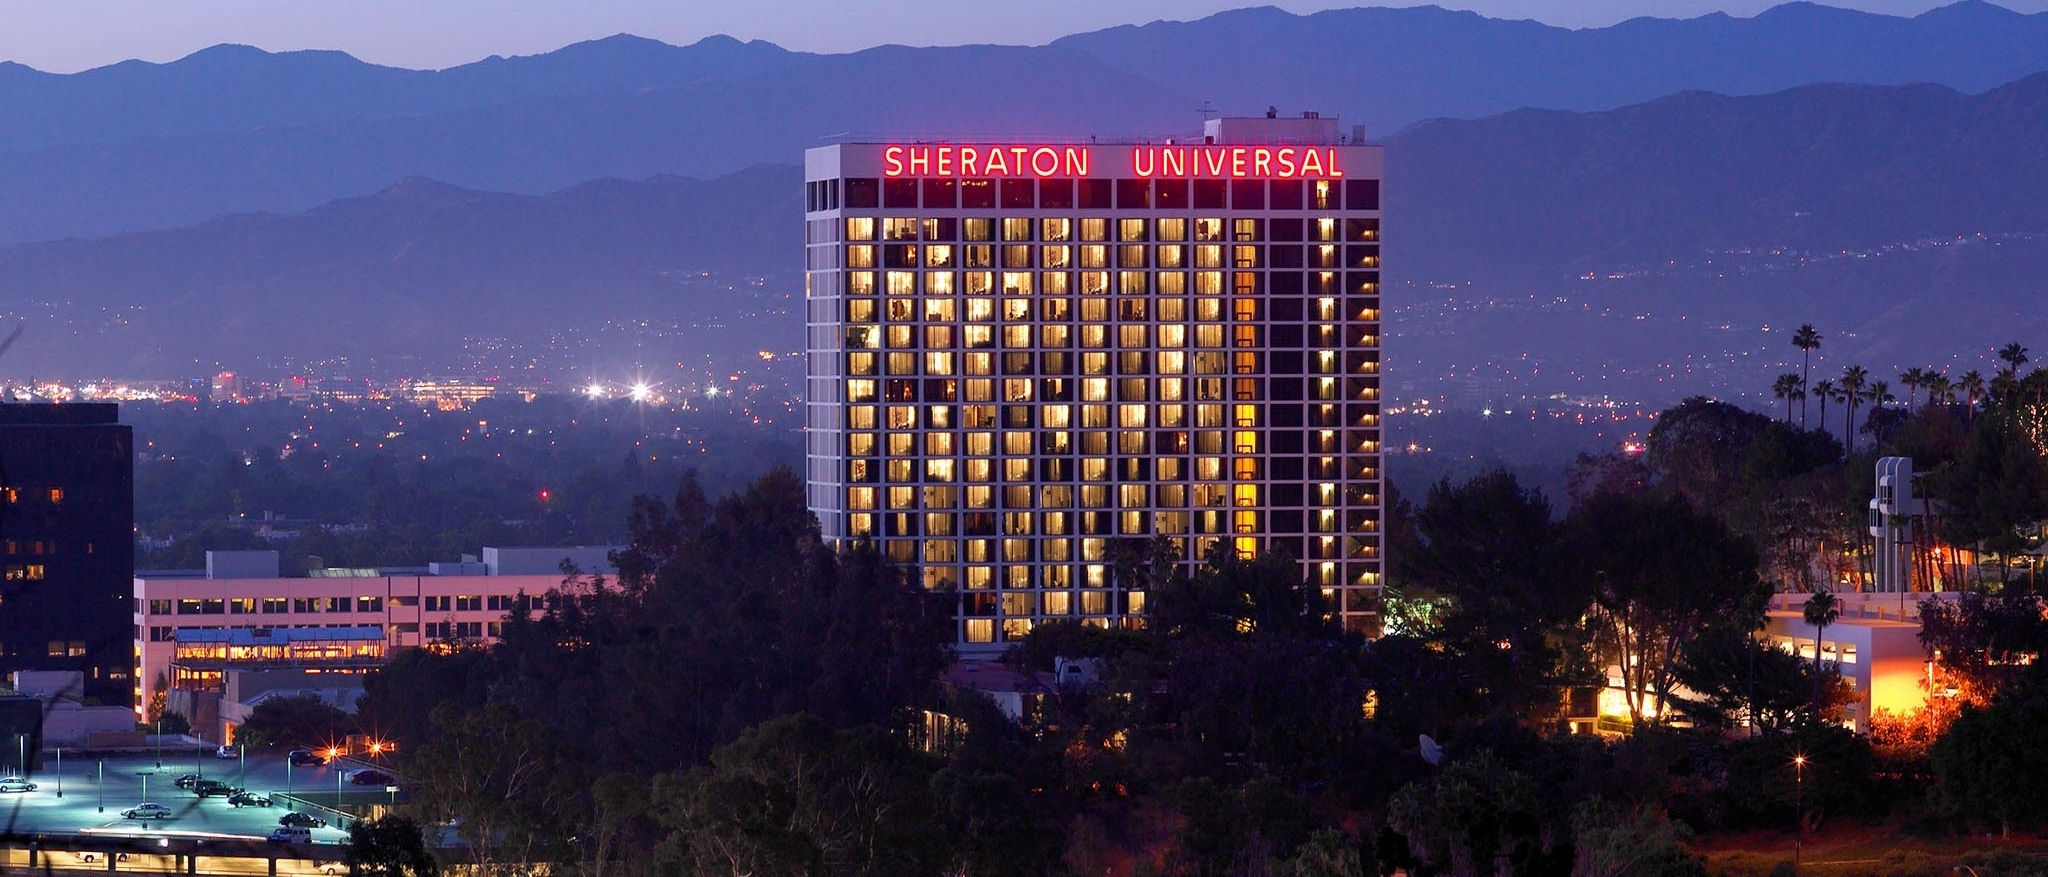 Universal City Hotel - Press Releases